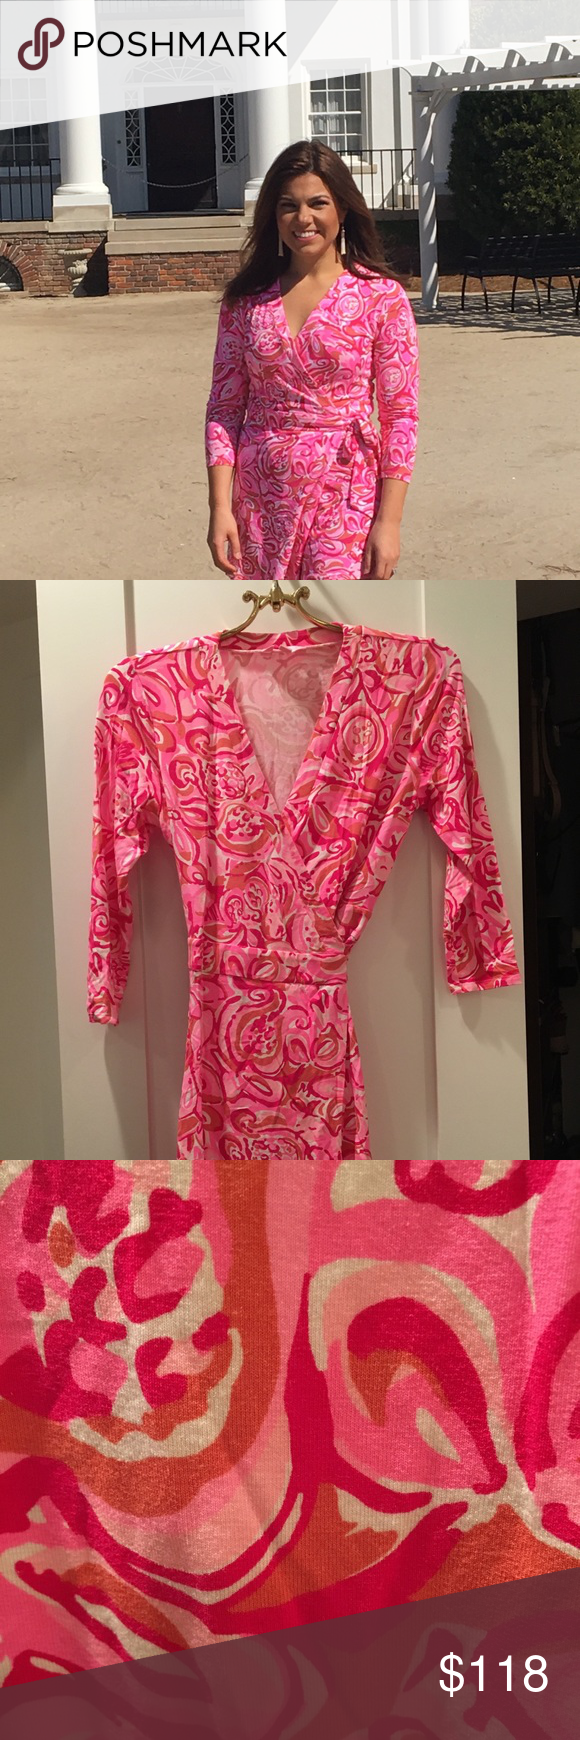 01ee9020e95 Lilly Pulitzer Karlie Romper in Pink Mango Salsa Super fun pink and white  romper from Lilly Pulitzer s Resort 2016 collection.